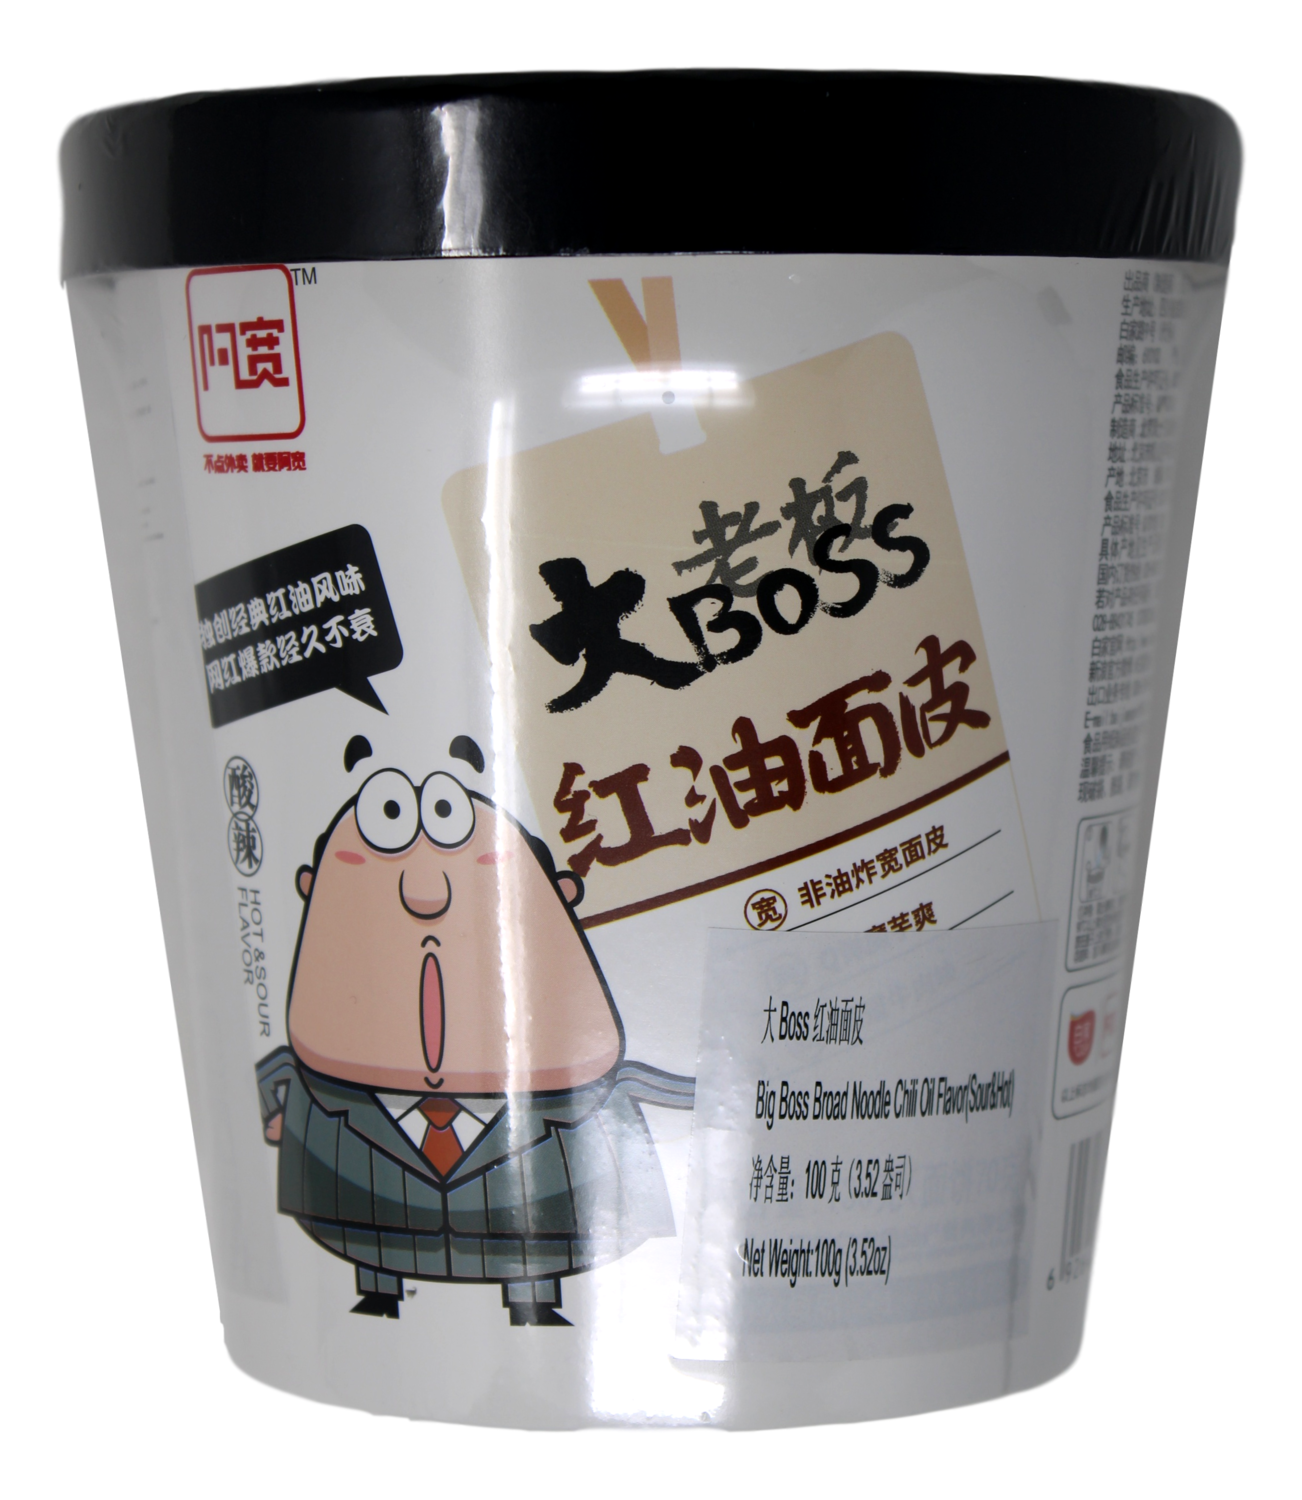 BIG BOSS BROAD NOODLE-CHILI OIL FLAVOR 大老板红油面皮(100G)